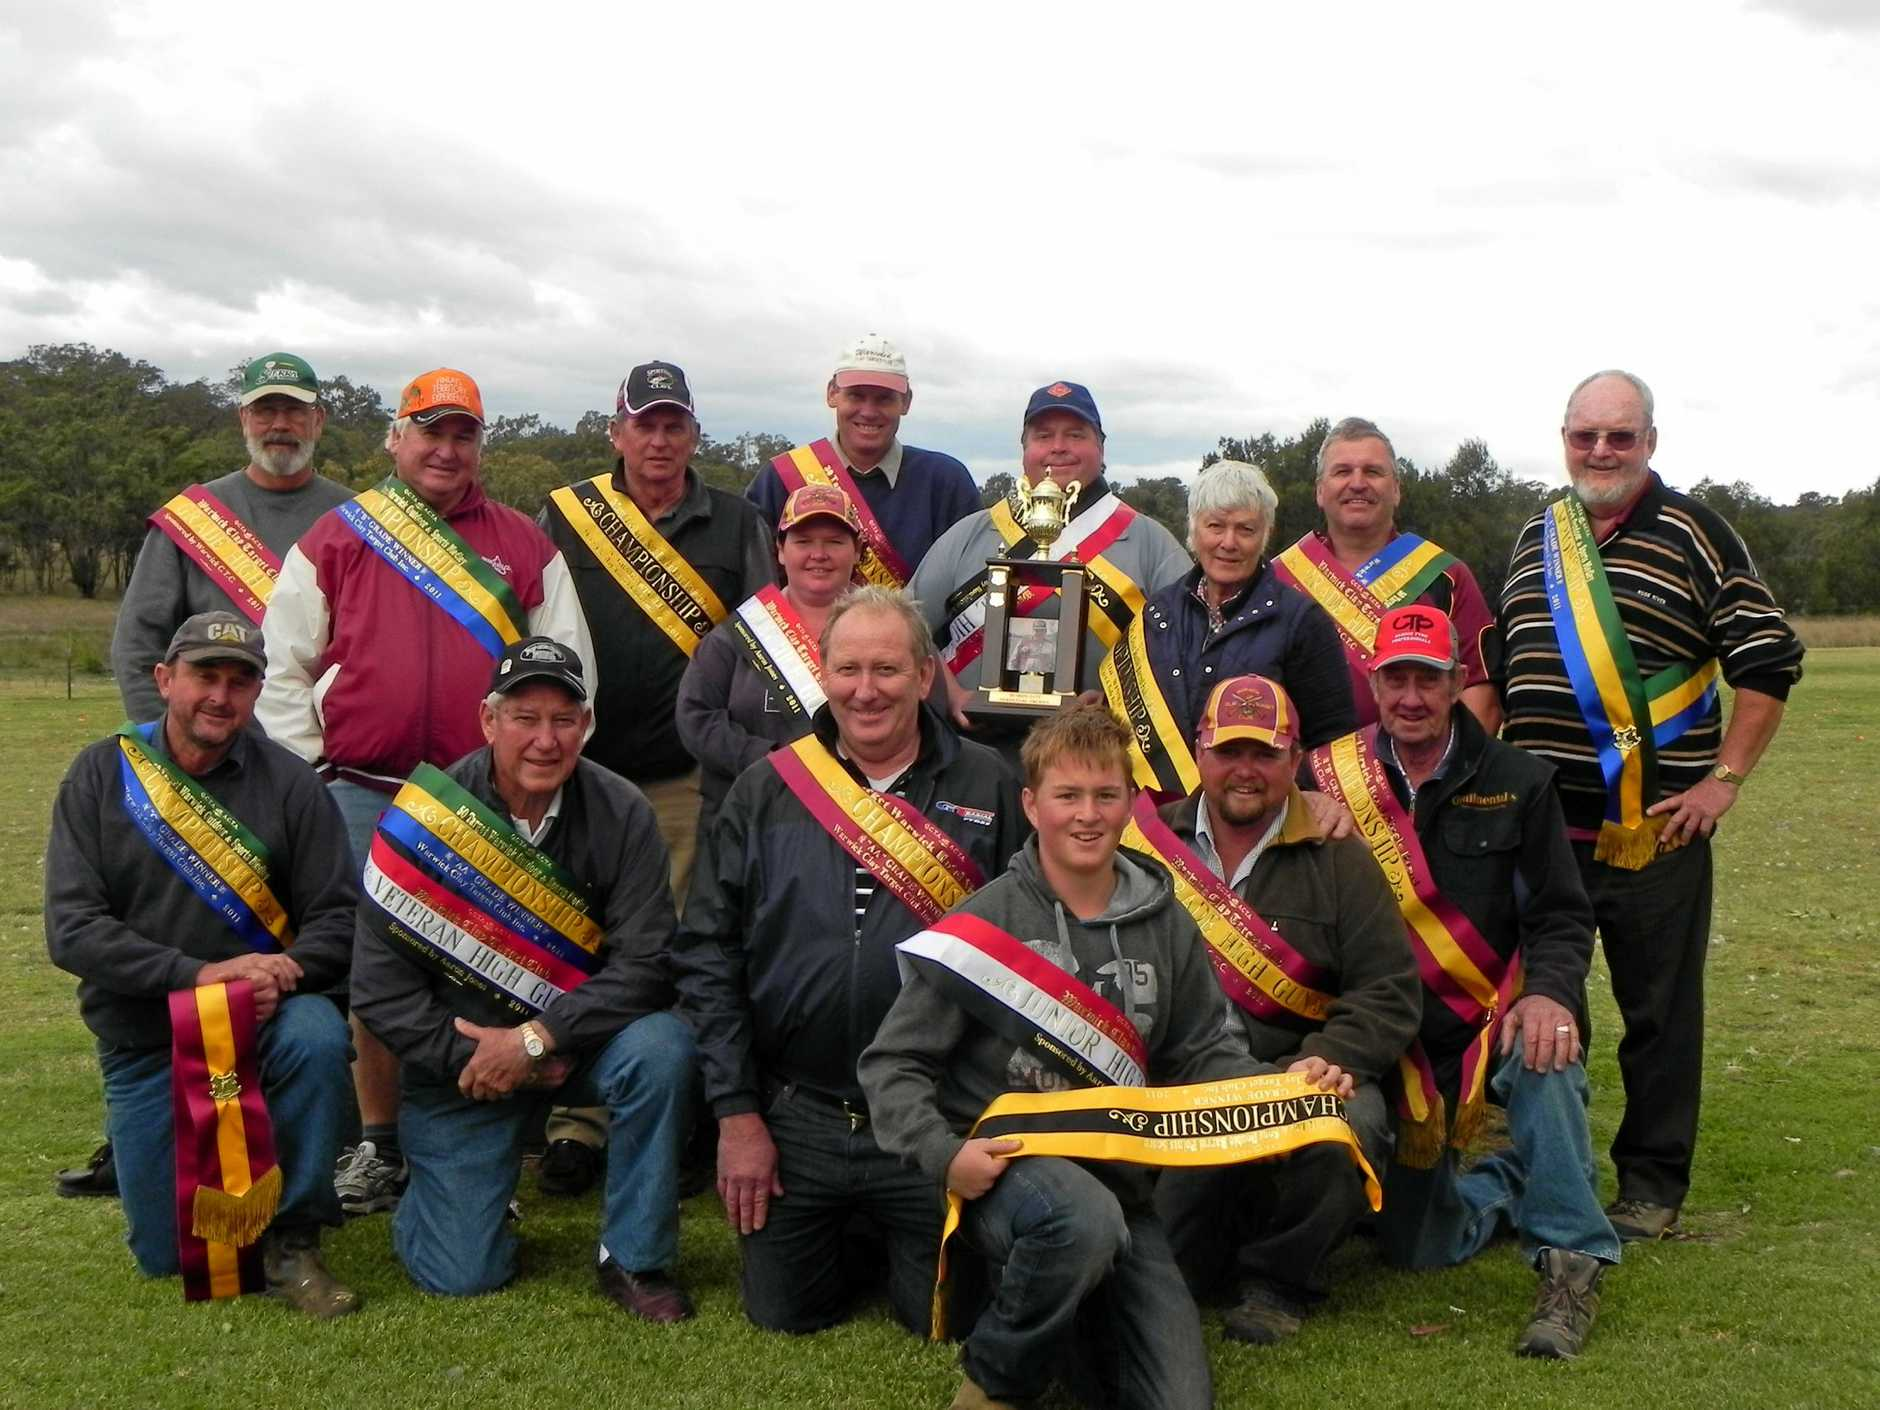 WINNERS: Warwick Clay Target Club annual shoot winners (standing, from left) Jim Hesbrook, Arthur Riley, Keith Simpson, Cameron Schoenfisch, Terry Rogers, Greg Smith, Terry Morony, (middle row) Kylie Green, Helen Finch, (kneeling) Bruce Pethers, Greg Newey, Paul Pearce, Michael Loy, Maurice Westbury and (front) Matthew Loy. Photo: Supplied by club